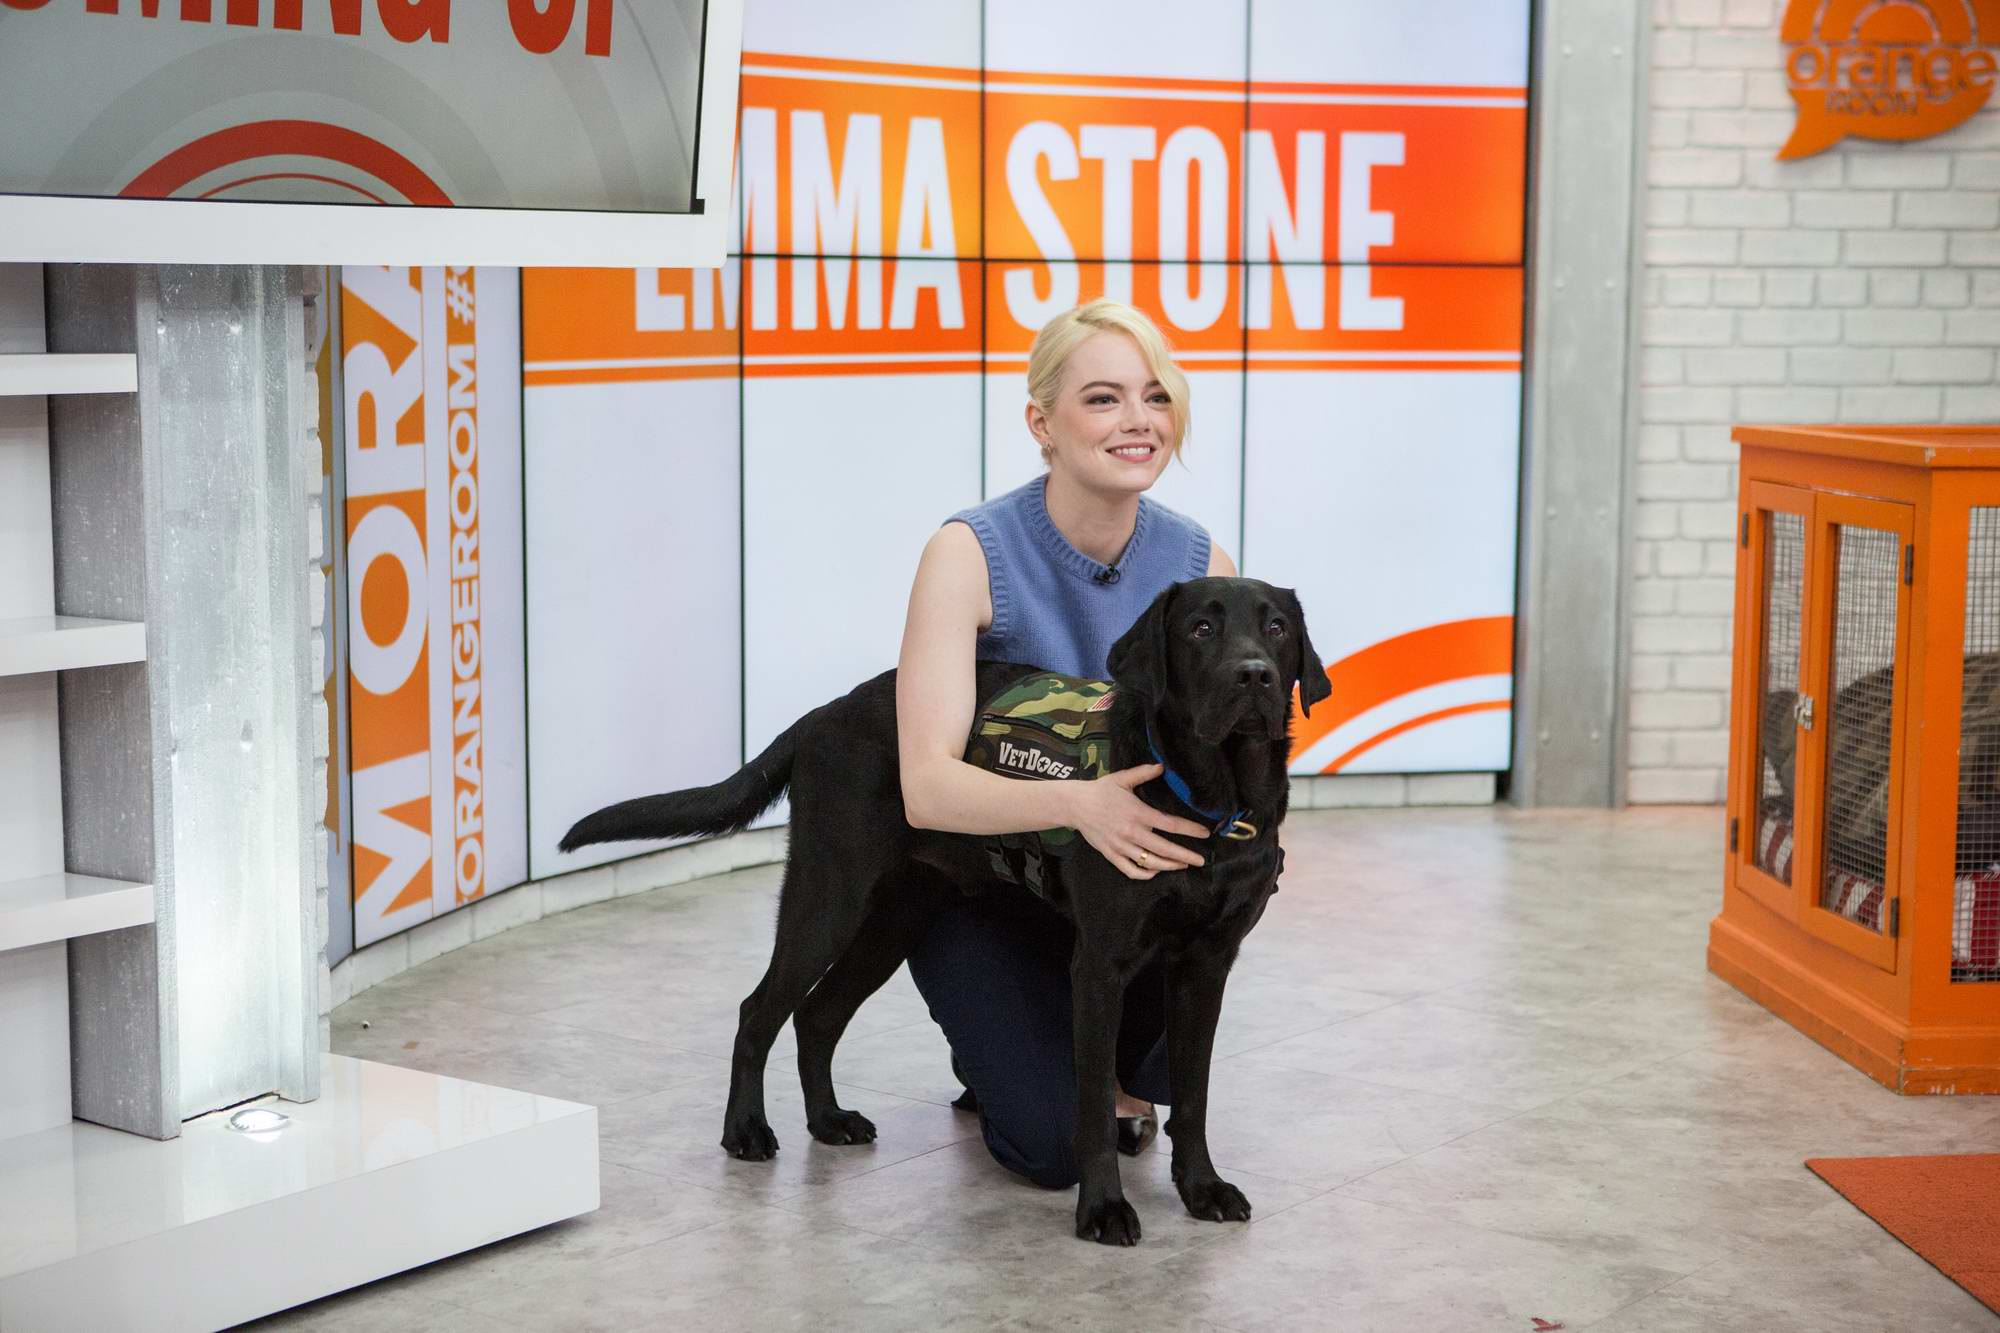 Emma Stone visits TODAY Show in New York